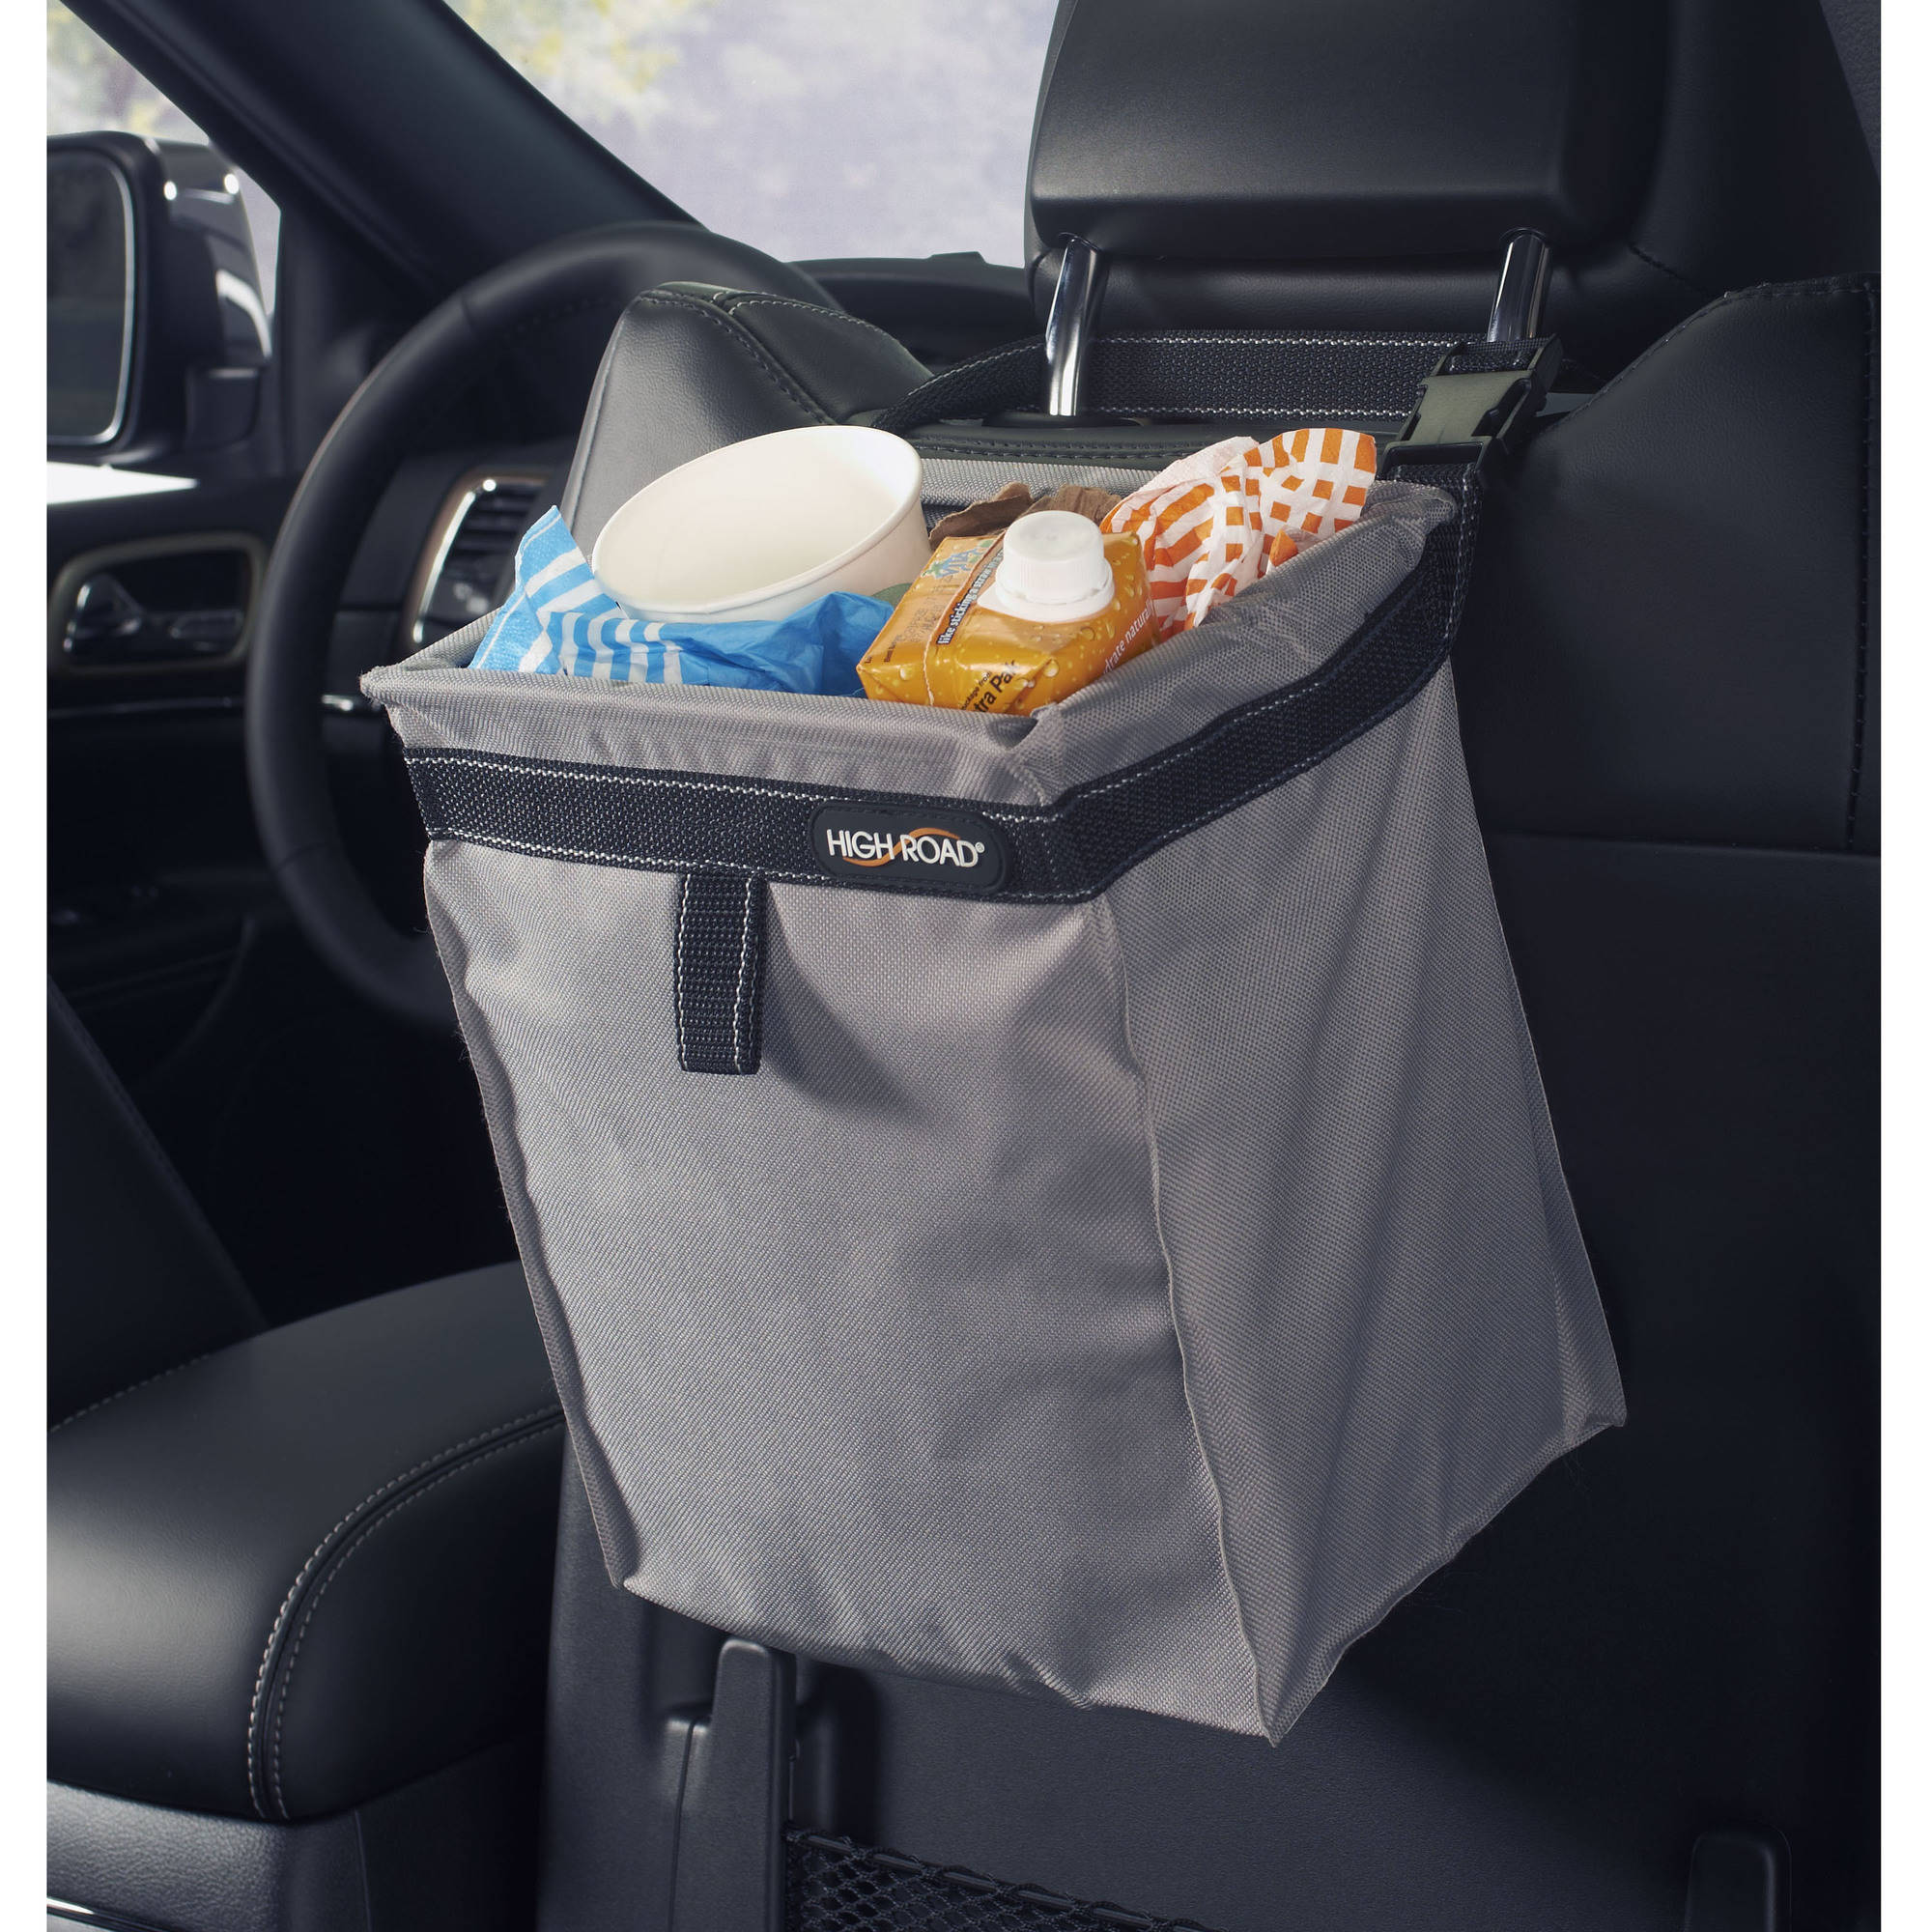 High Road TrashStash Leakproof Car Garbage Bag -Gray